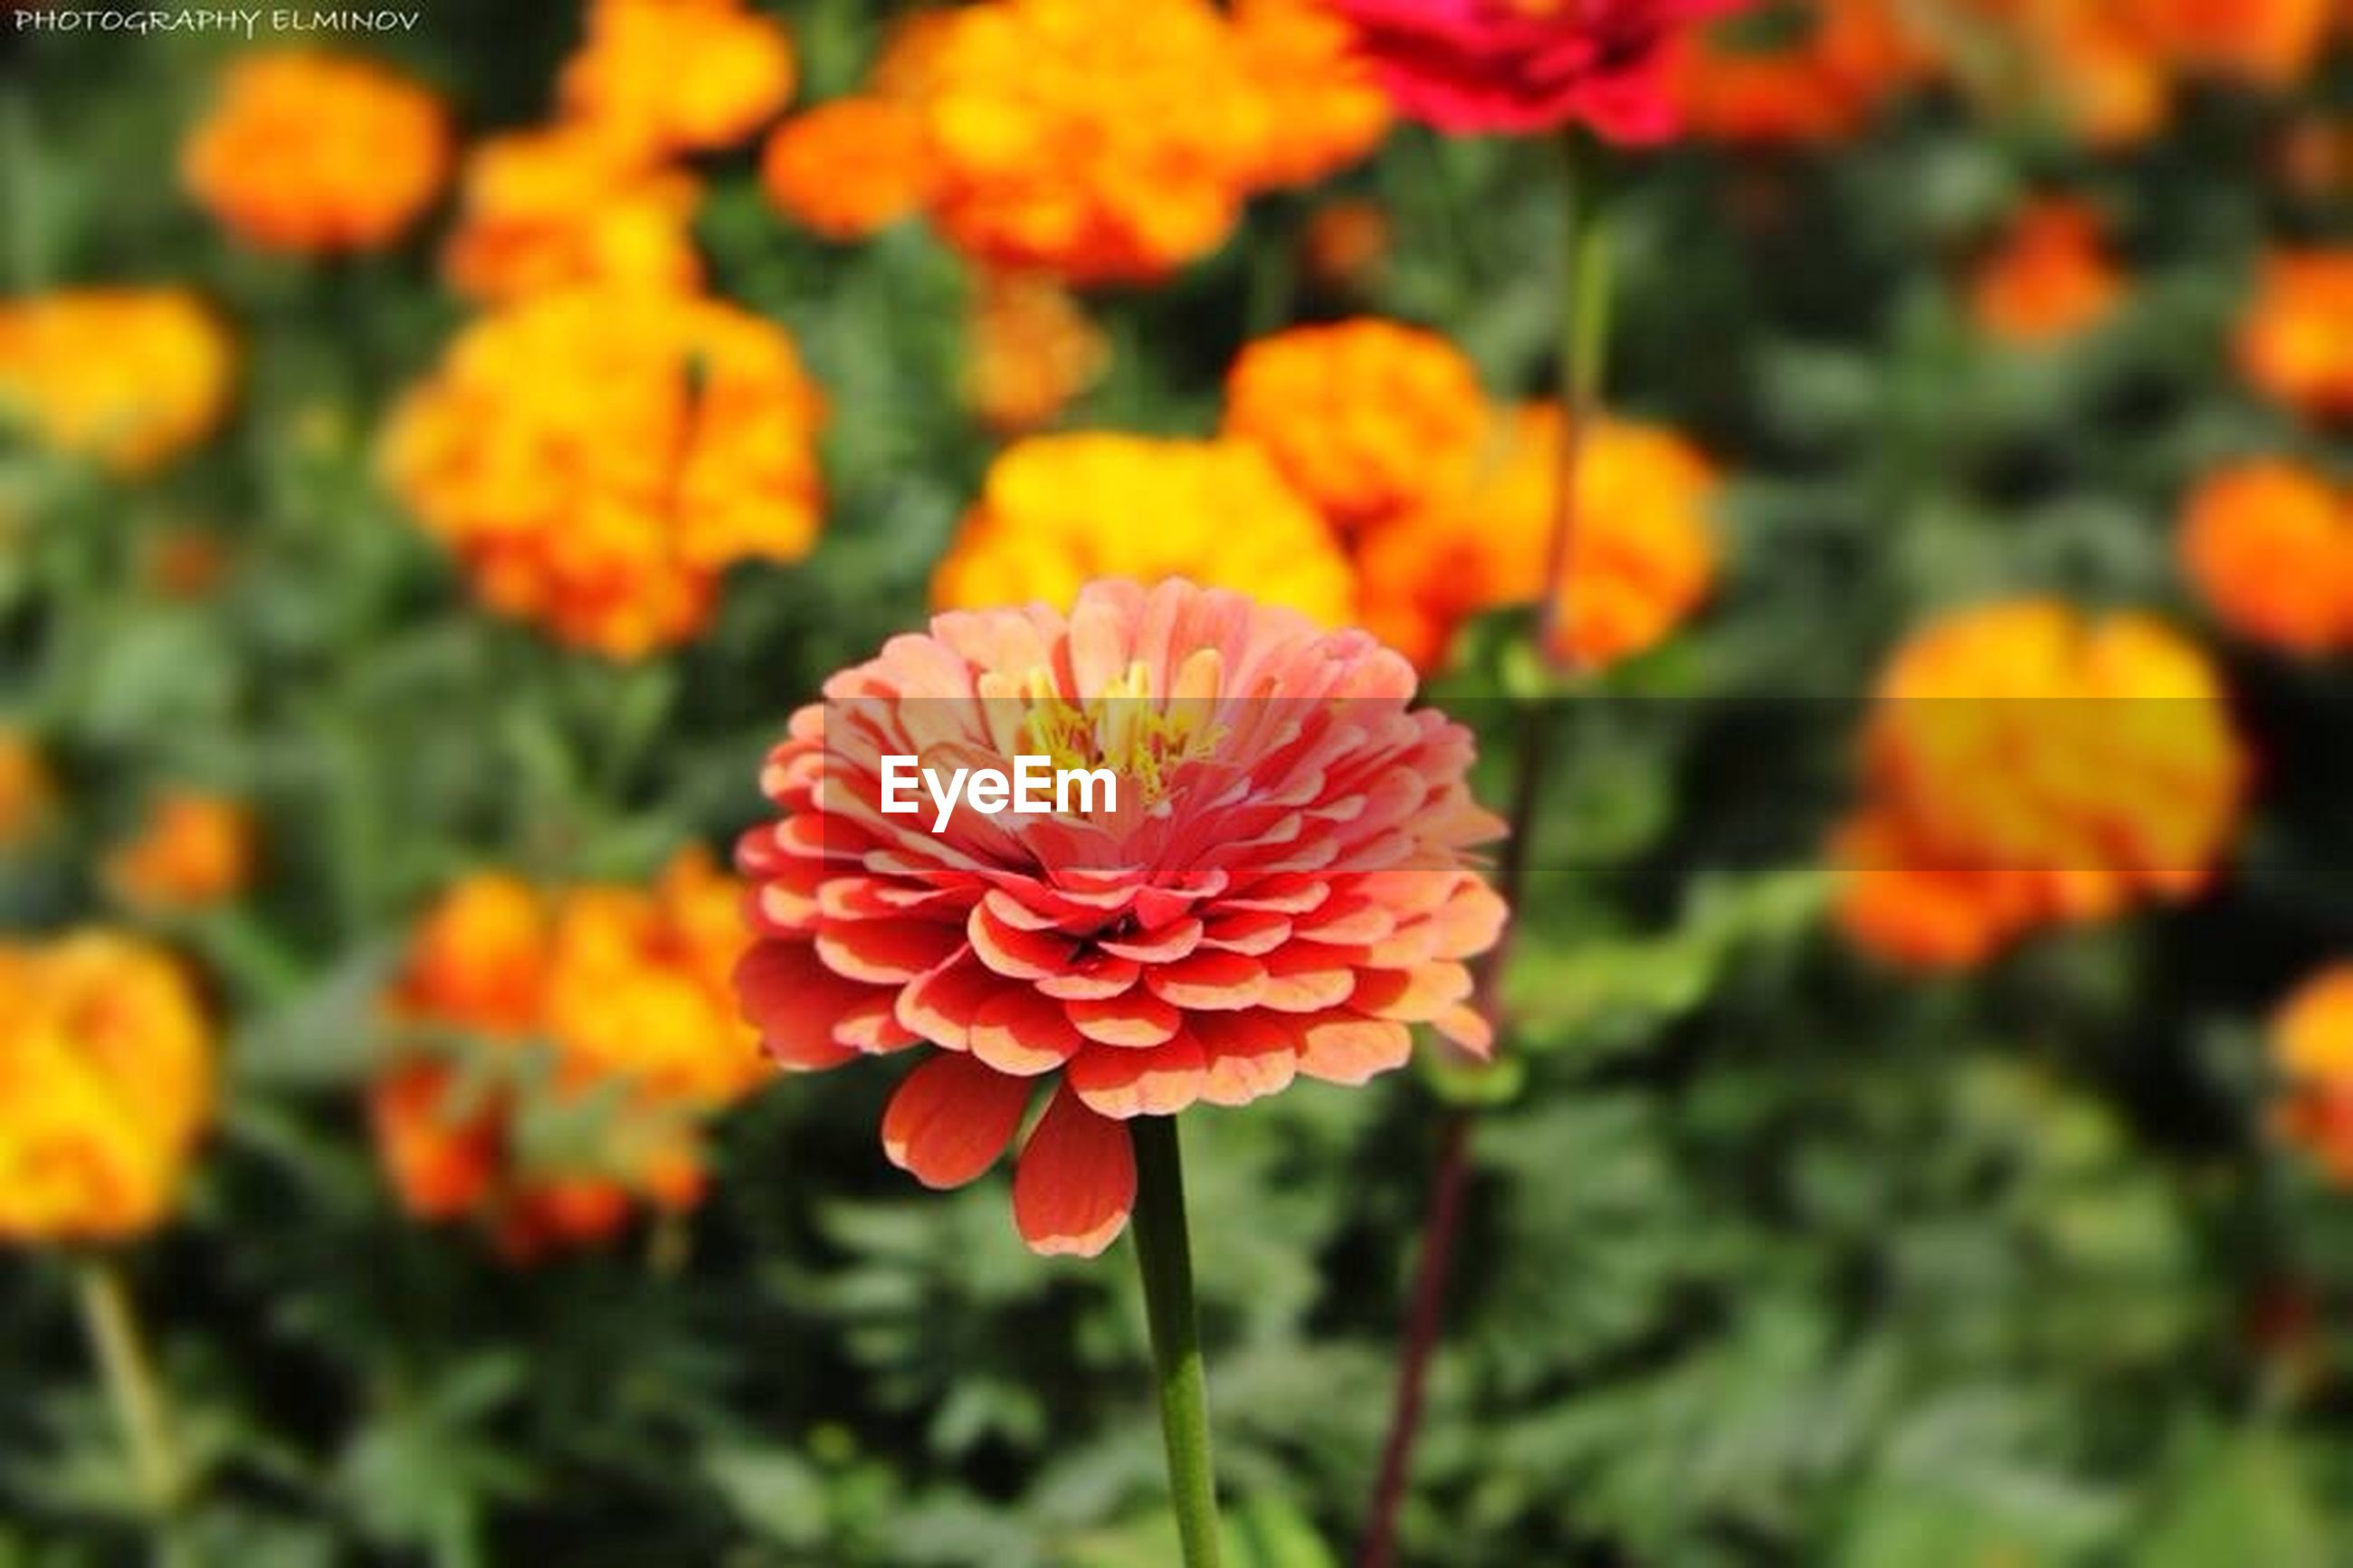 flower, petal, freshness, fragility, flower head, growth, beauty in nature, blooming, nature, orange color, focus on foreground, close-up, plant, red, yellow, in bloom, park - man made space, blossom, no people, outdoors